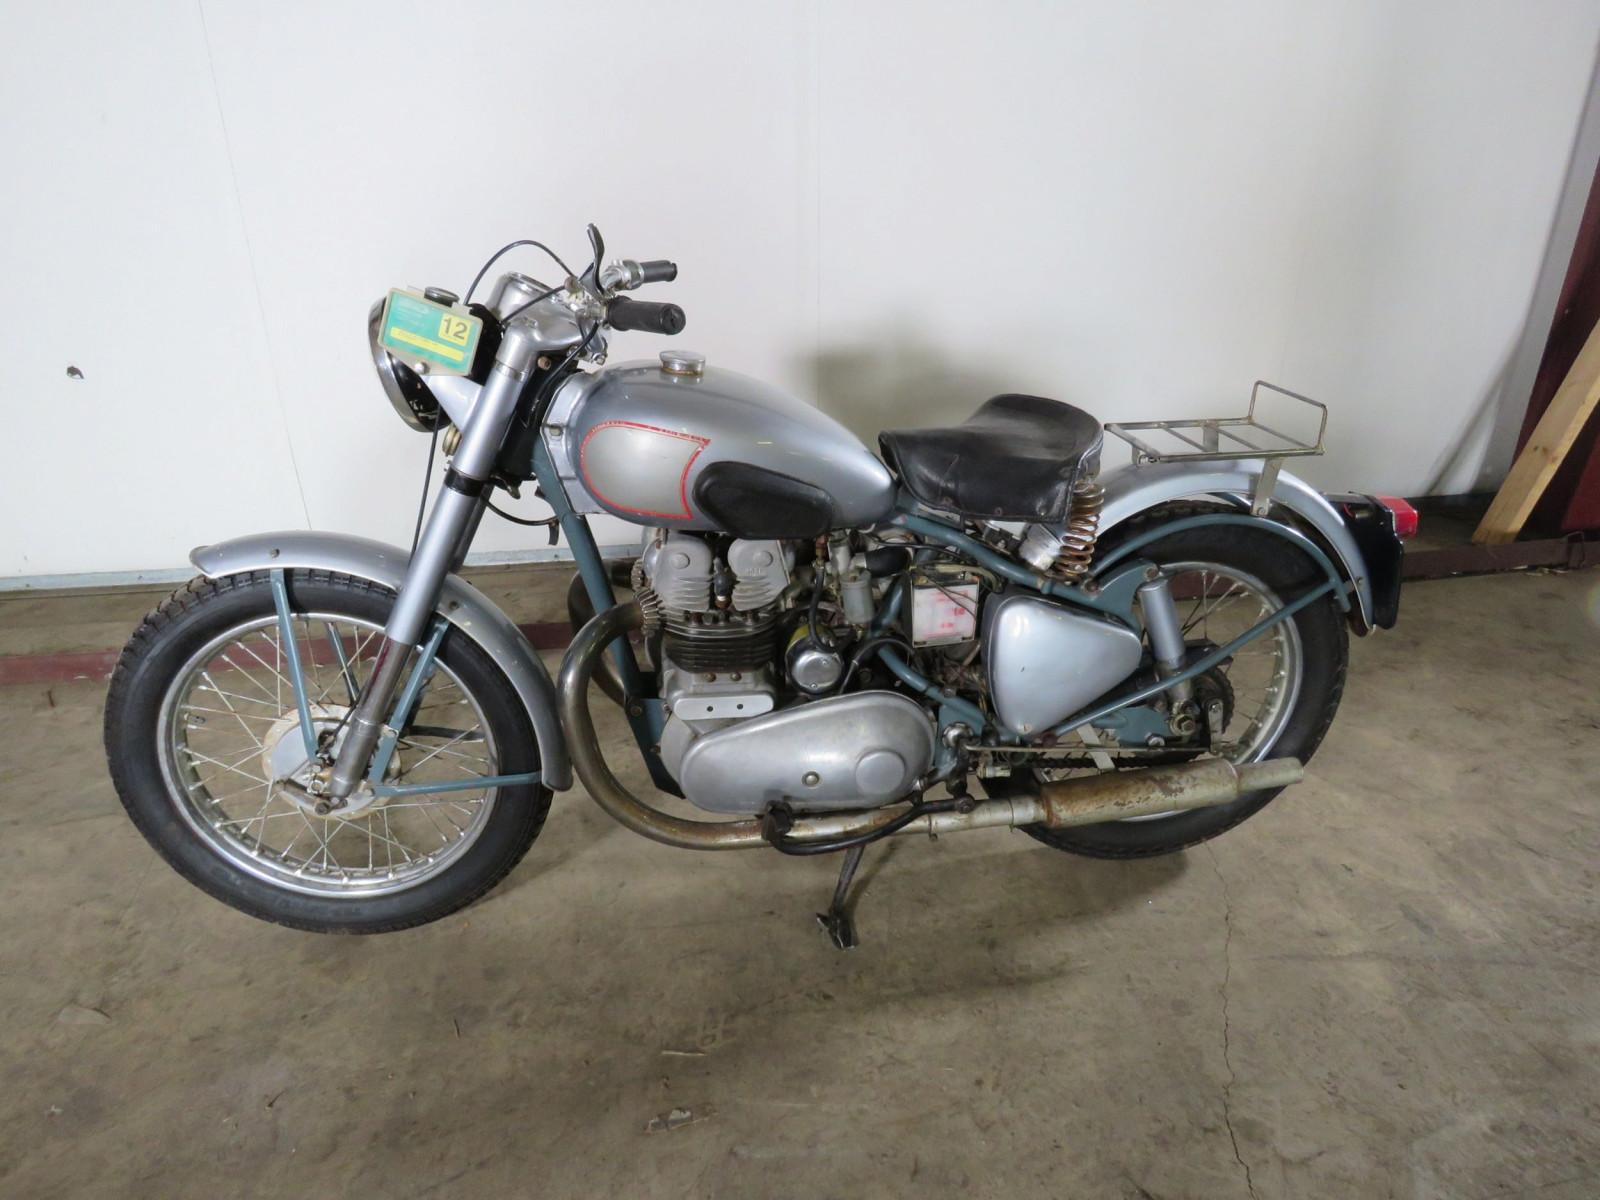 1952 Royal Enfield 500 Twin Motorcycle - Image 6